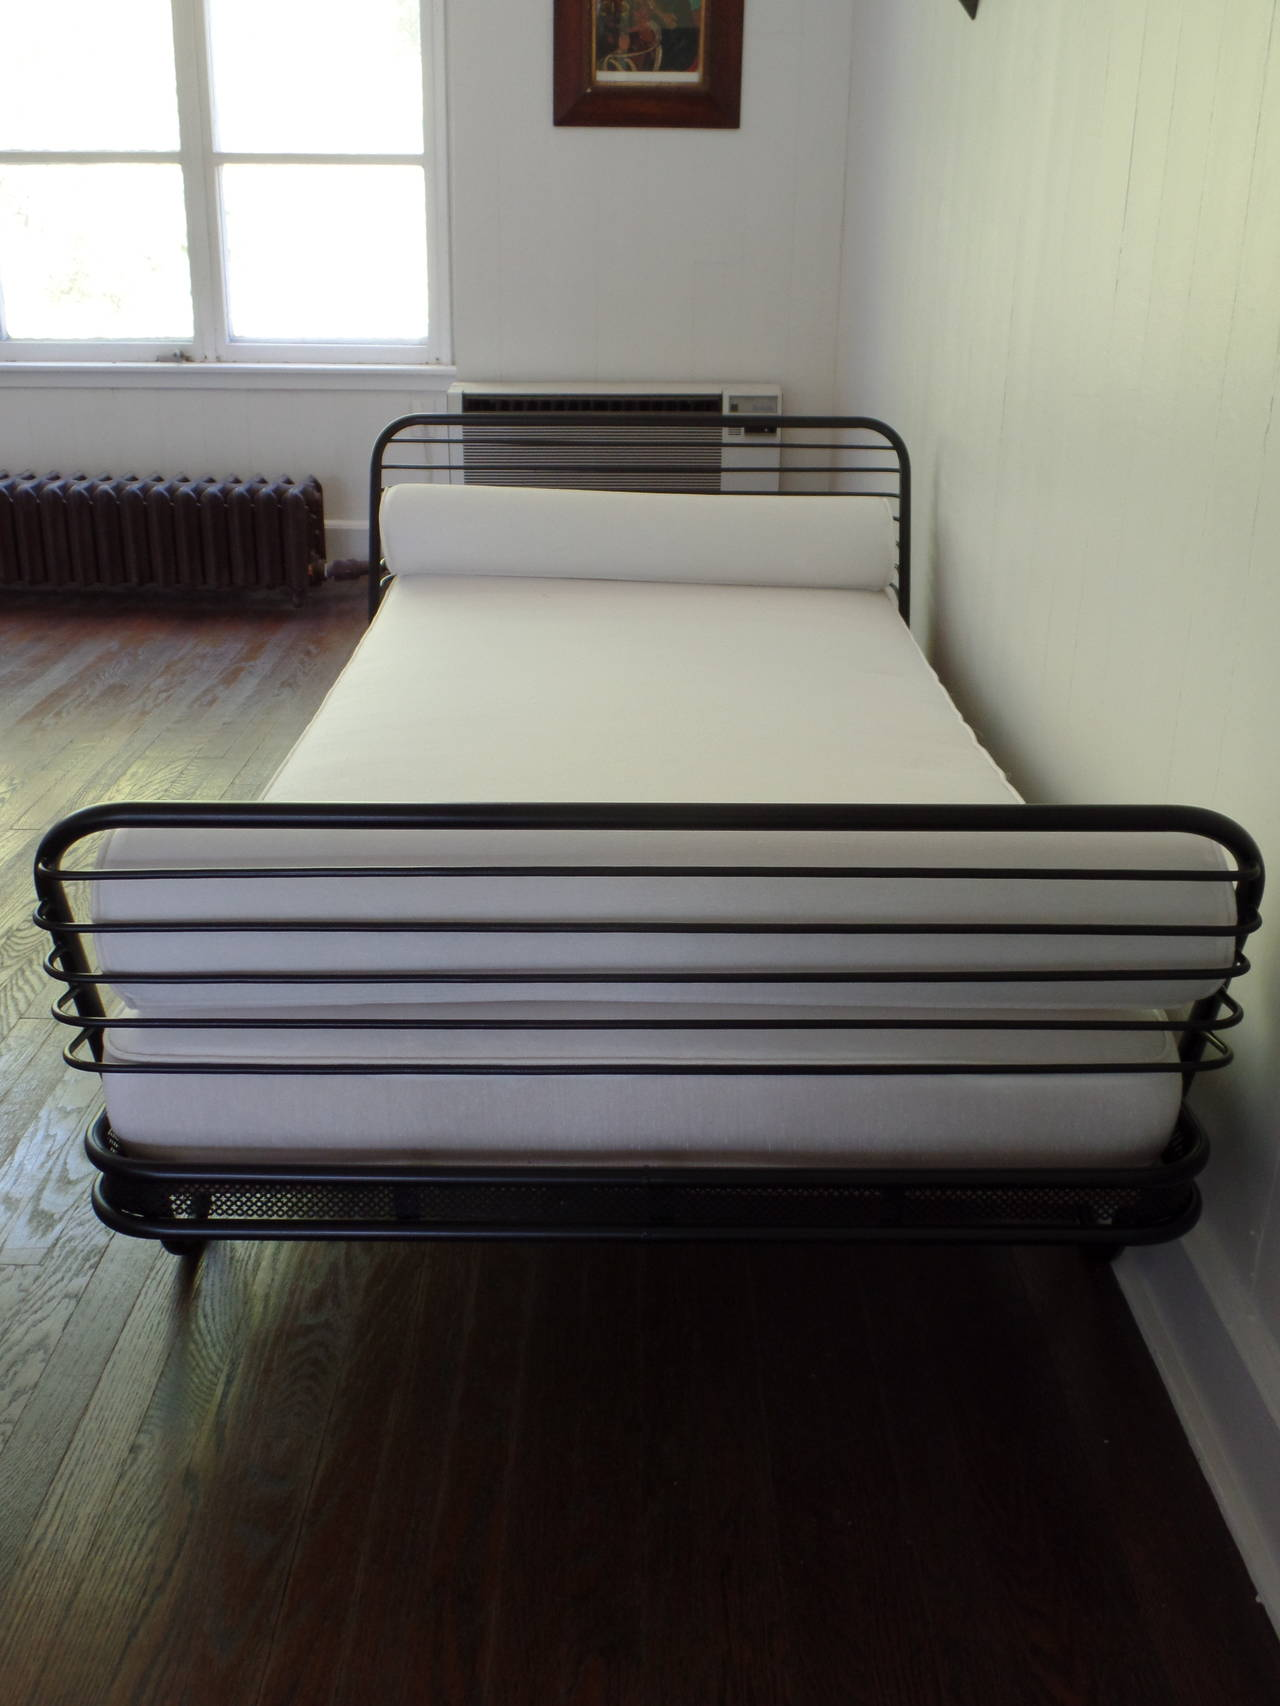 French Mid-Century Modern 'Kyoto' Enameled Iron Daybed / Bed by Mathieu Matégot In Excellent Condition For Sale In New York, NY